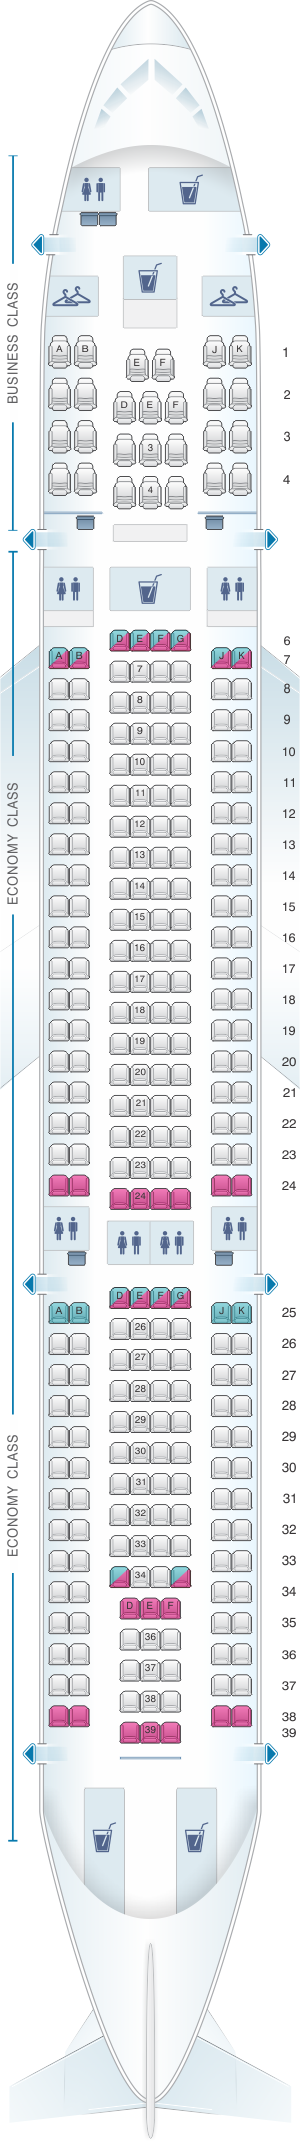 Seat map for Virgin Australia Airbus A330 200 Config. 2